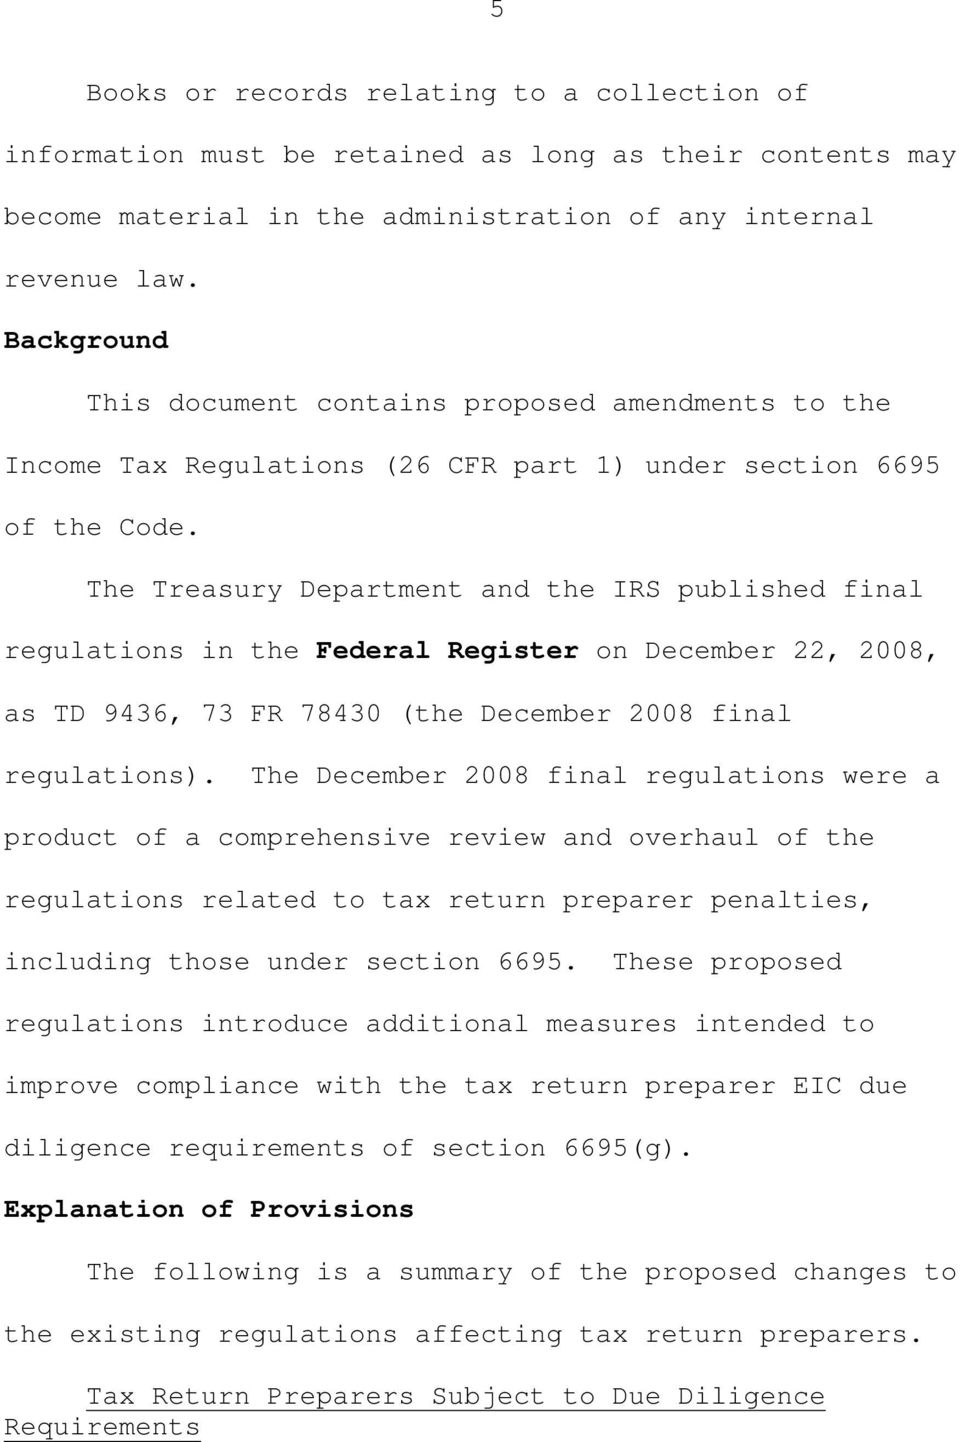 The Treasury Department and the IRS published final regulations in the Federal Register on December 22, 2008, as TD 9436, 73 FR 78430 (the December 2008 final regulations).